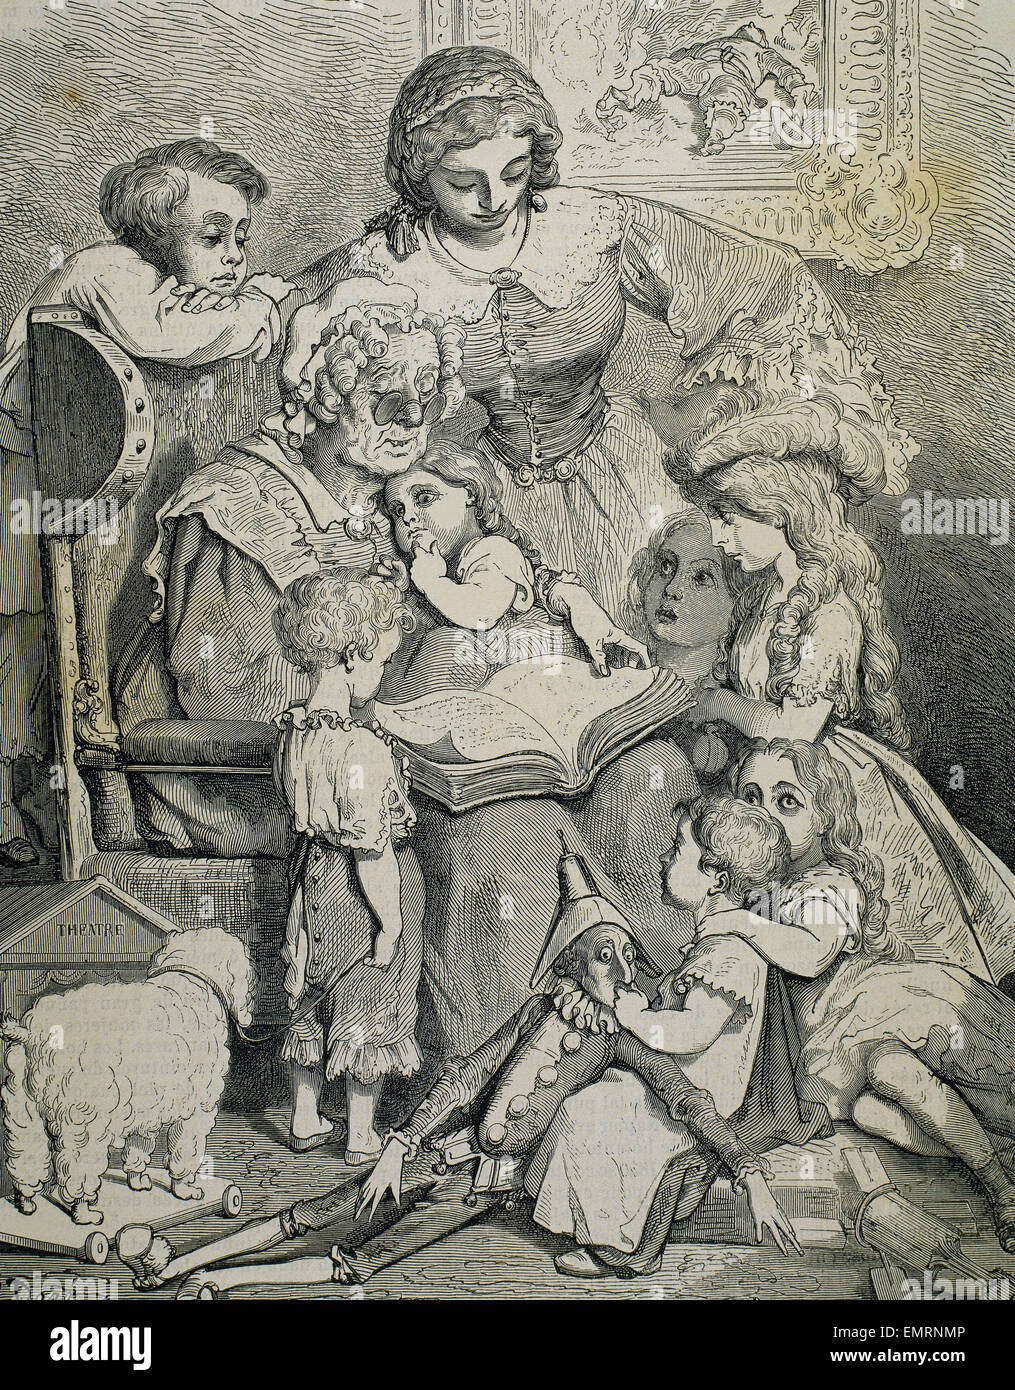 Family reading tales of Charles Perrault. Engraving by Pannemaker. 19th century. - Stock Image